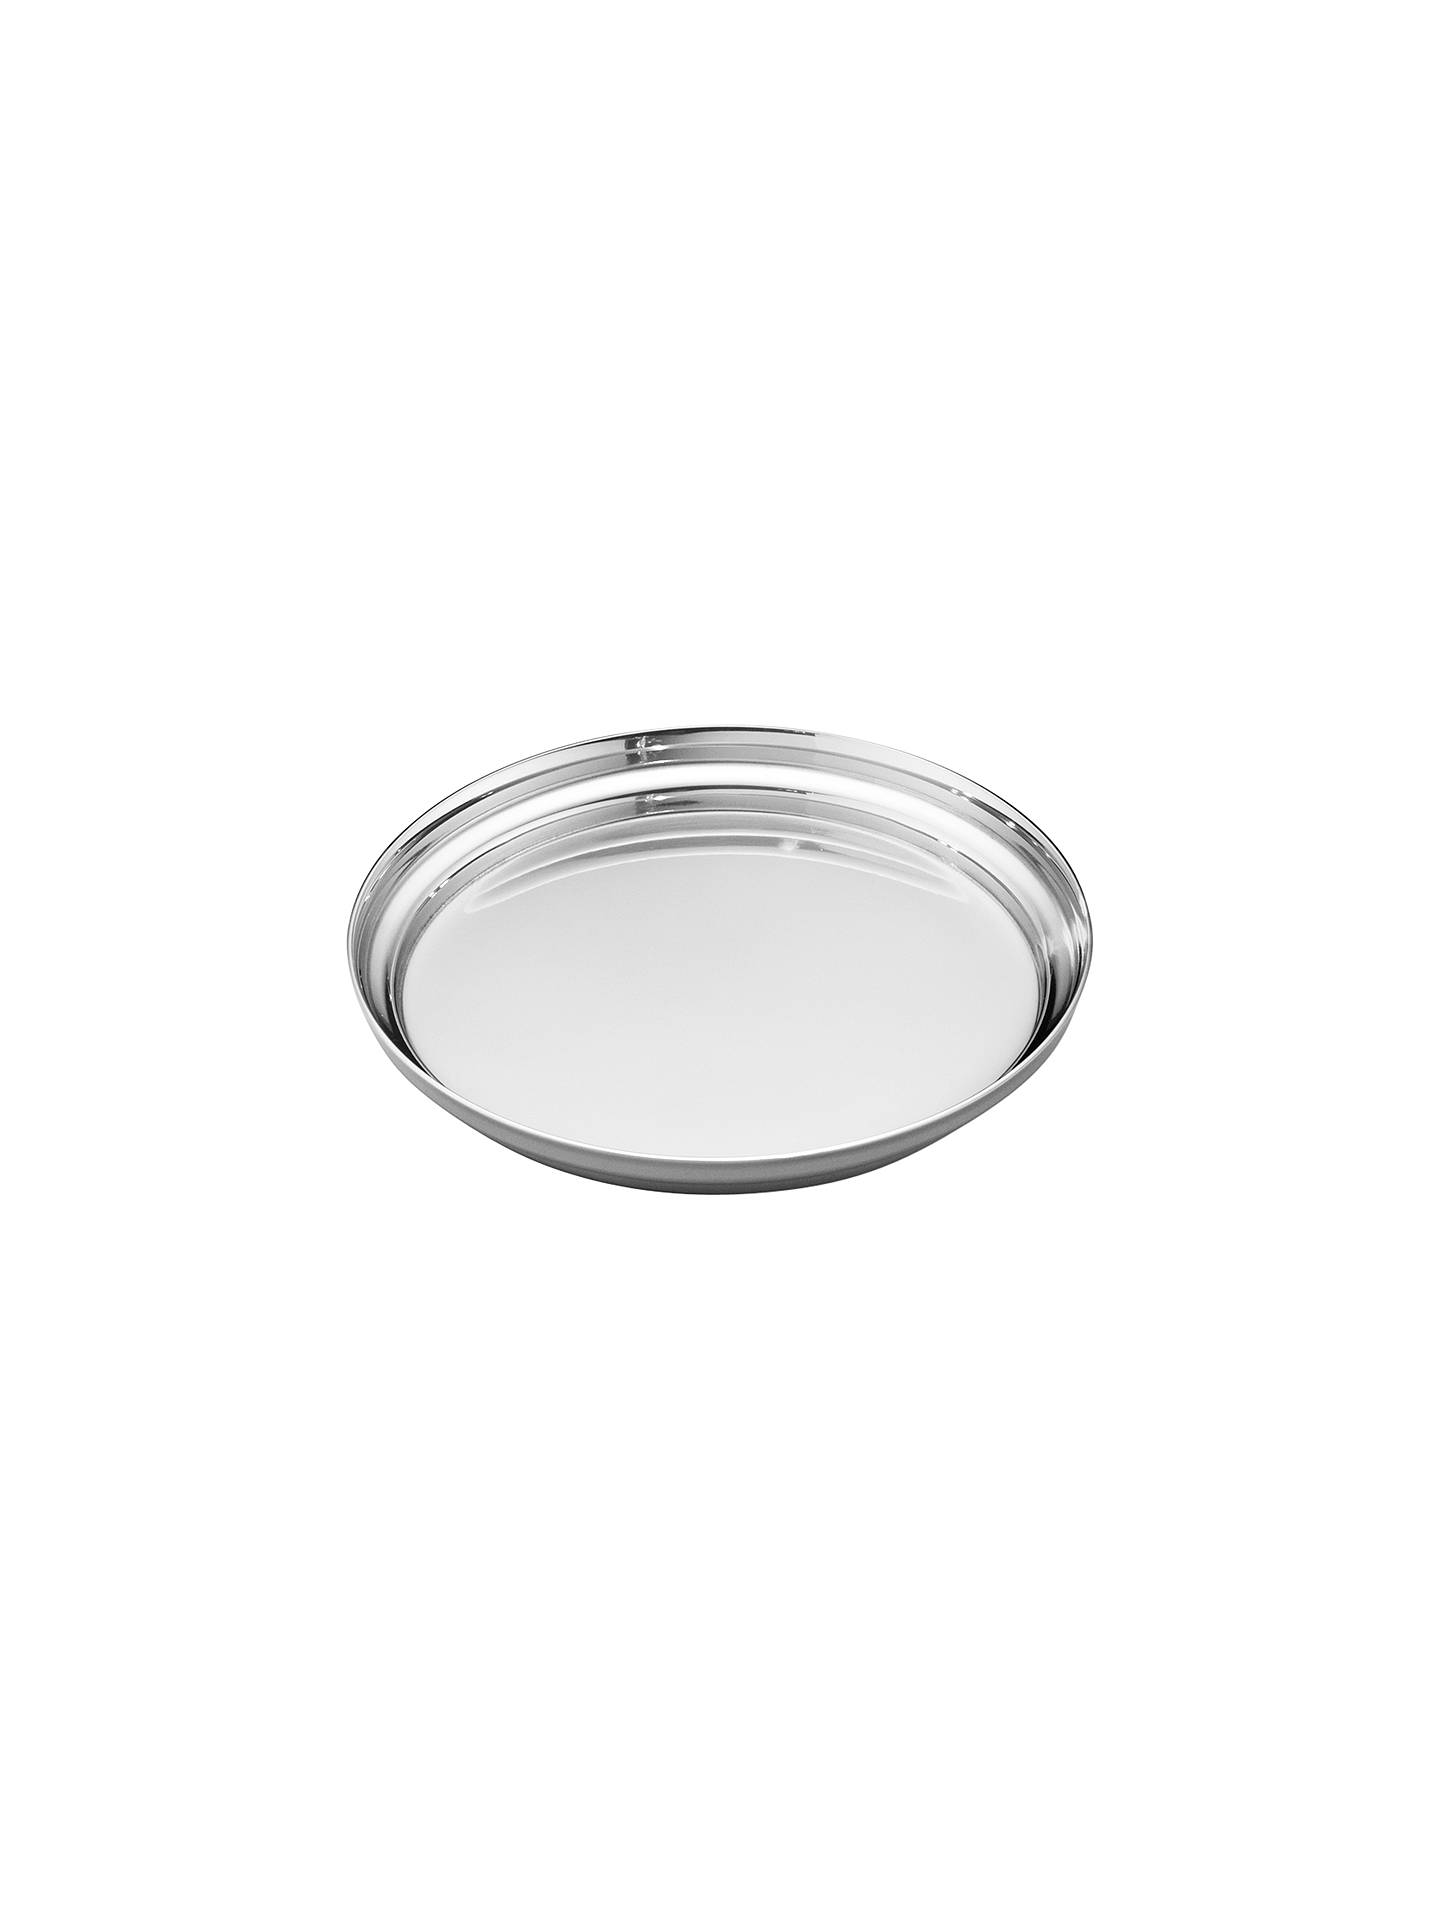 Georg Jensen Manhattan Stainless Steel Wine Glass Coaster